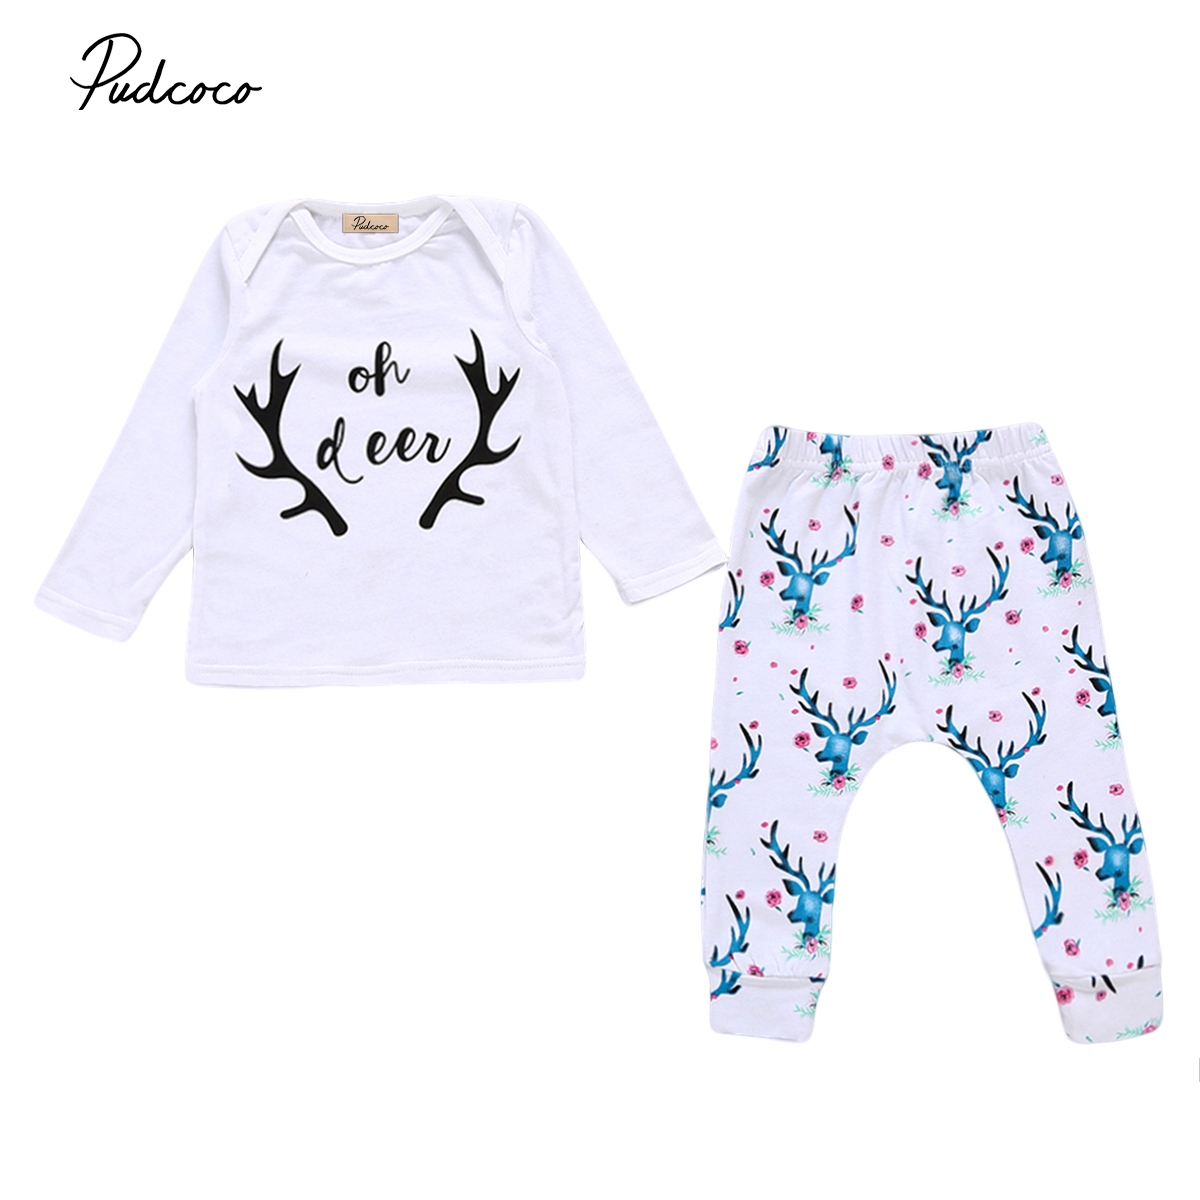 autumn baby clothing Newborn Baby boys Girls Deers print Tops T-shirt Pants baby Outfifts Set Clothes 0-24M